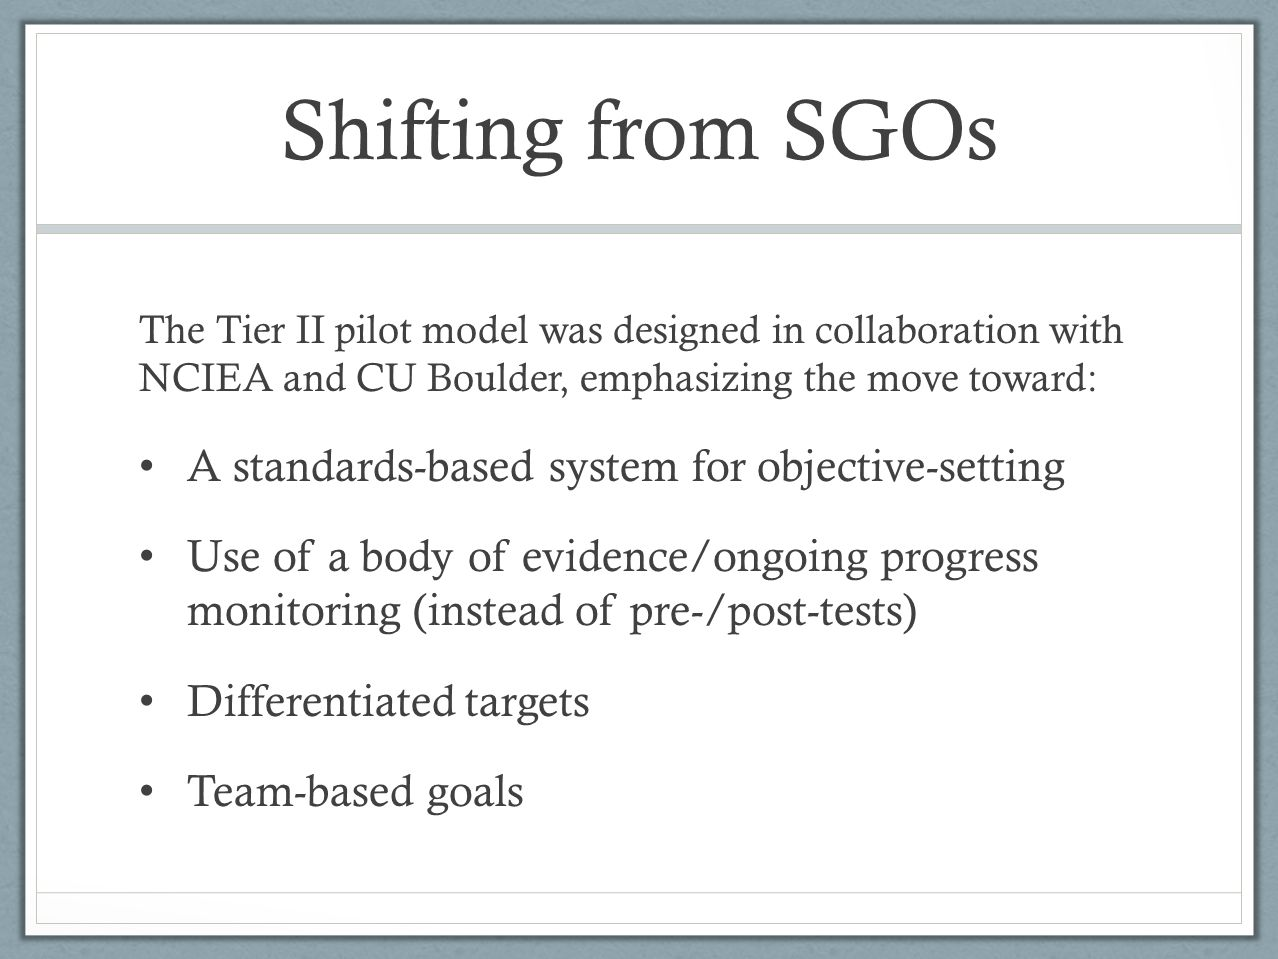 Shifting from SGOs The Tier II pilot model was designed in collaboration with NCIEA and CU Boulder, emphasizing the move toward: A standards-based system for objective-setting Use of a body of evidence/ongoing progress monitoring (instead of pre-/post-tests) Differentiated targets Team-based goals